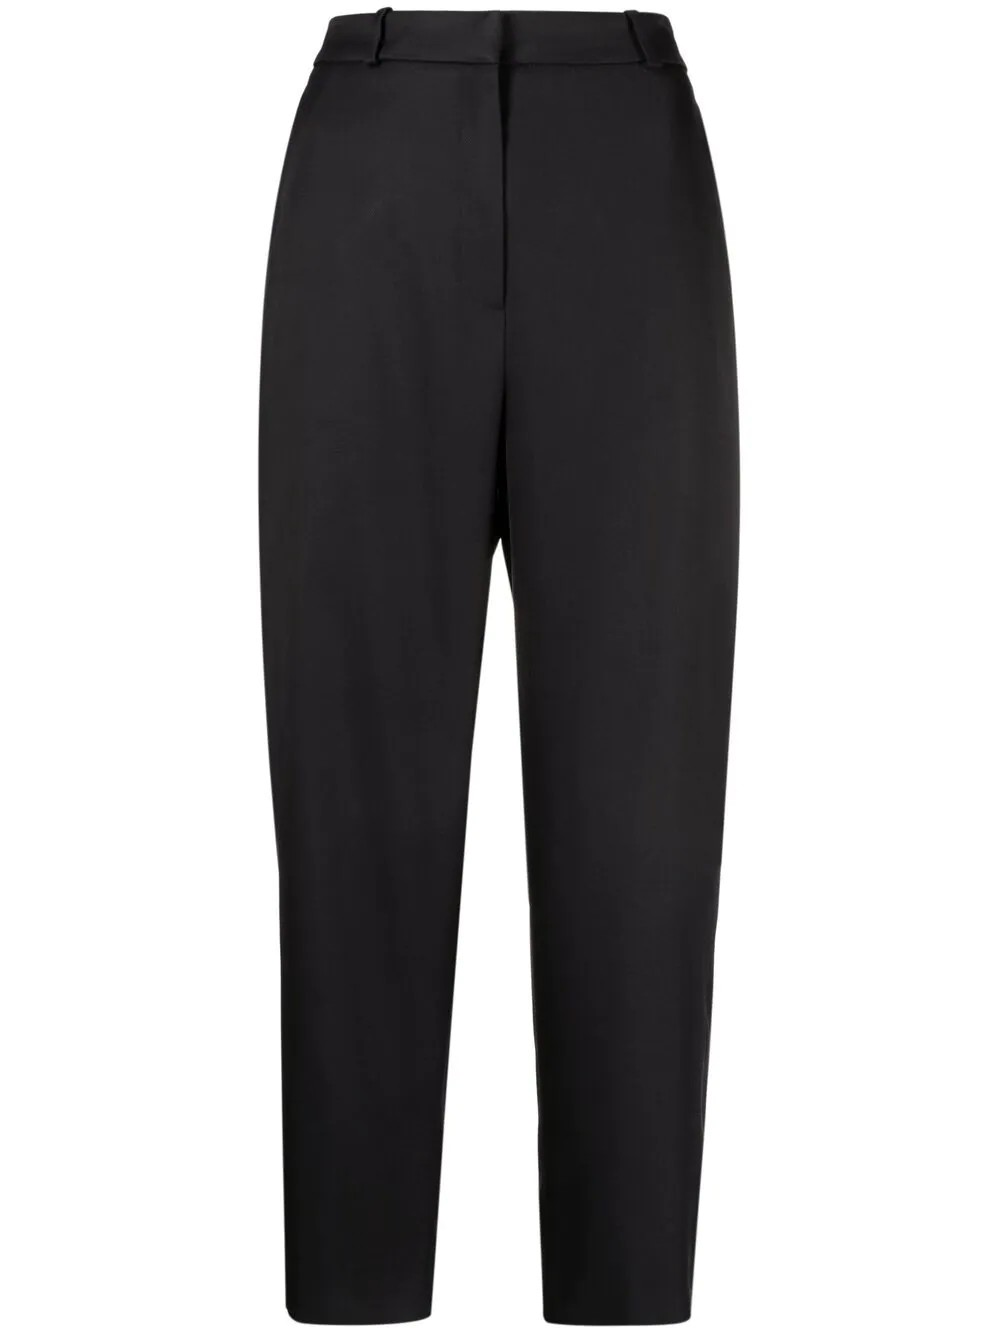 TWISTED SEAM TROUSERS